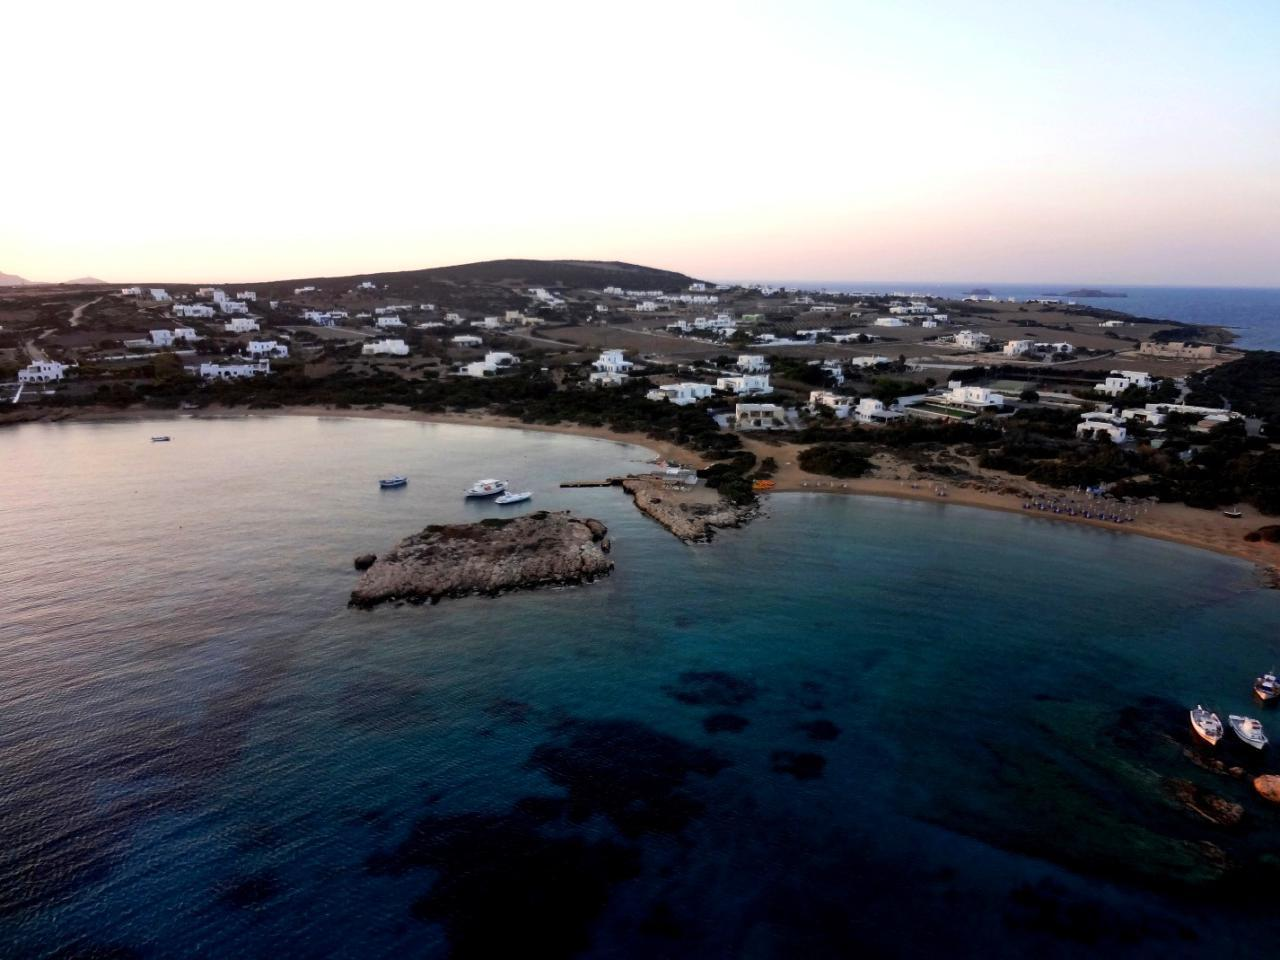 Holiday apartment Exklusives Garten-Appartment in Paros (1876194), Ampelas, Paros, Cyclades, Greece, picture 21